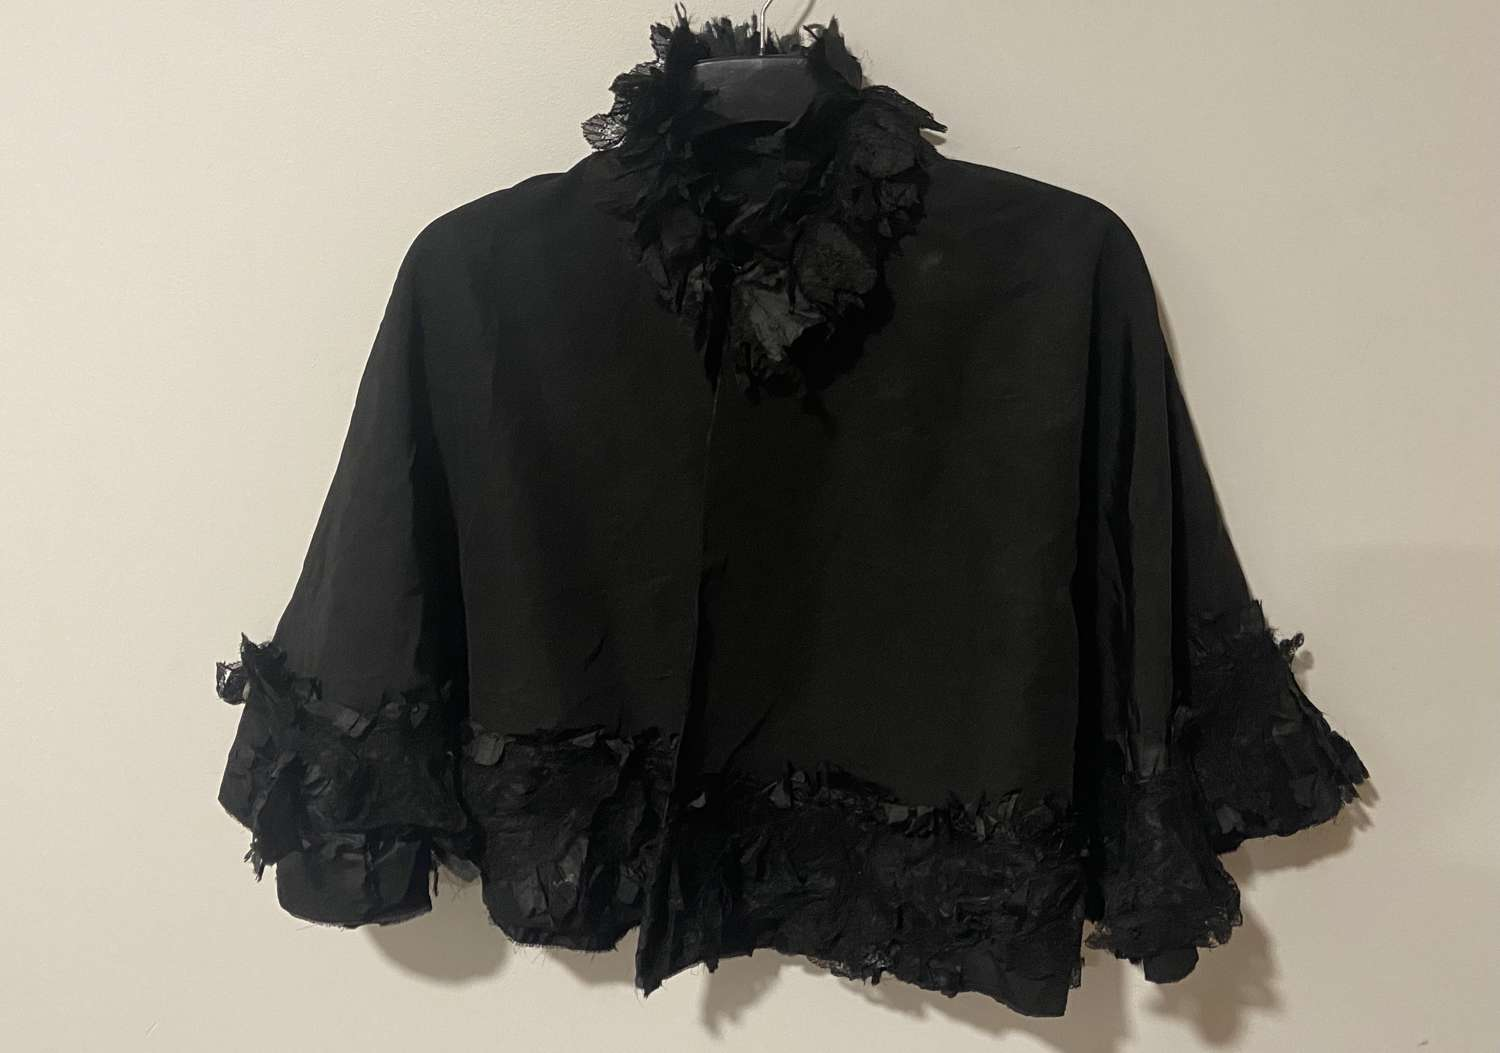 Antique Victorian 1850s Black Gothic Mourning Widowers Cape Dress